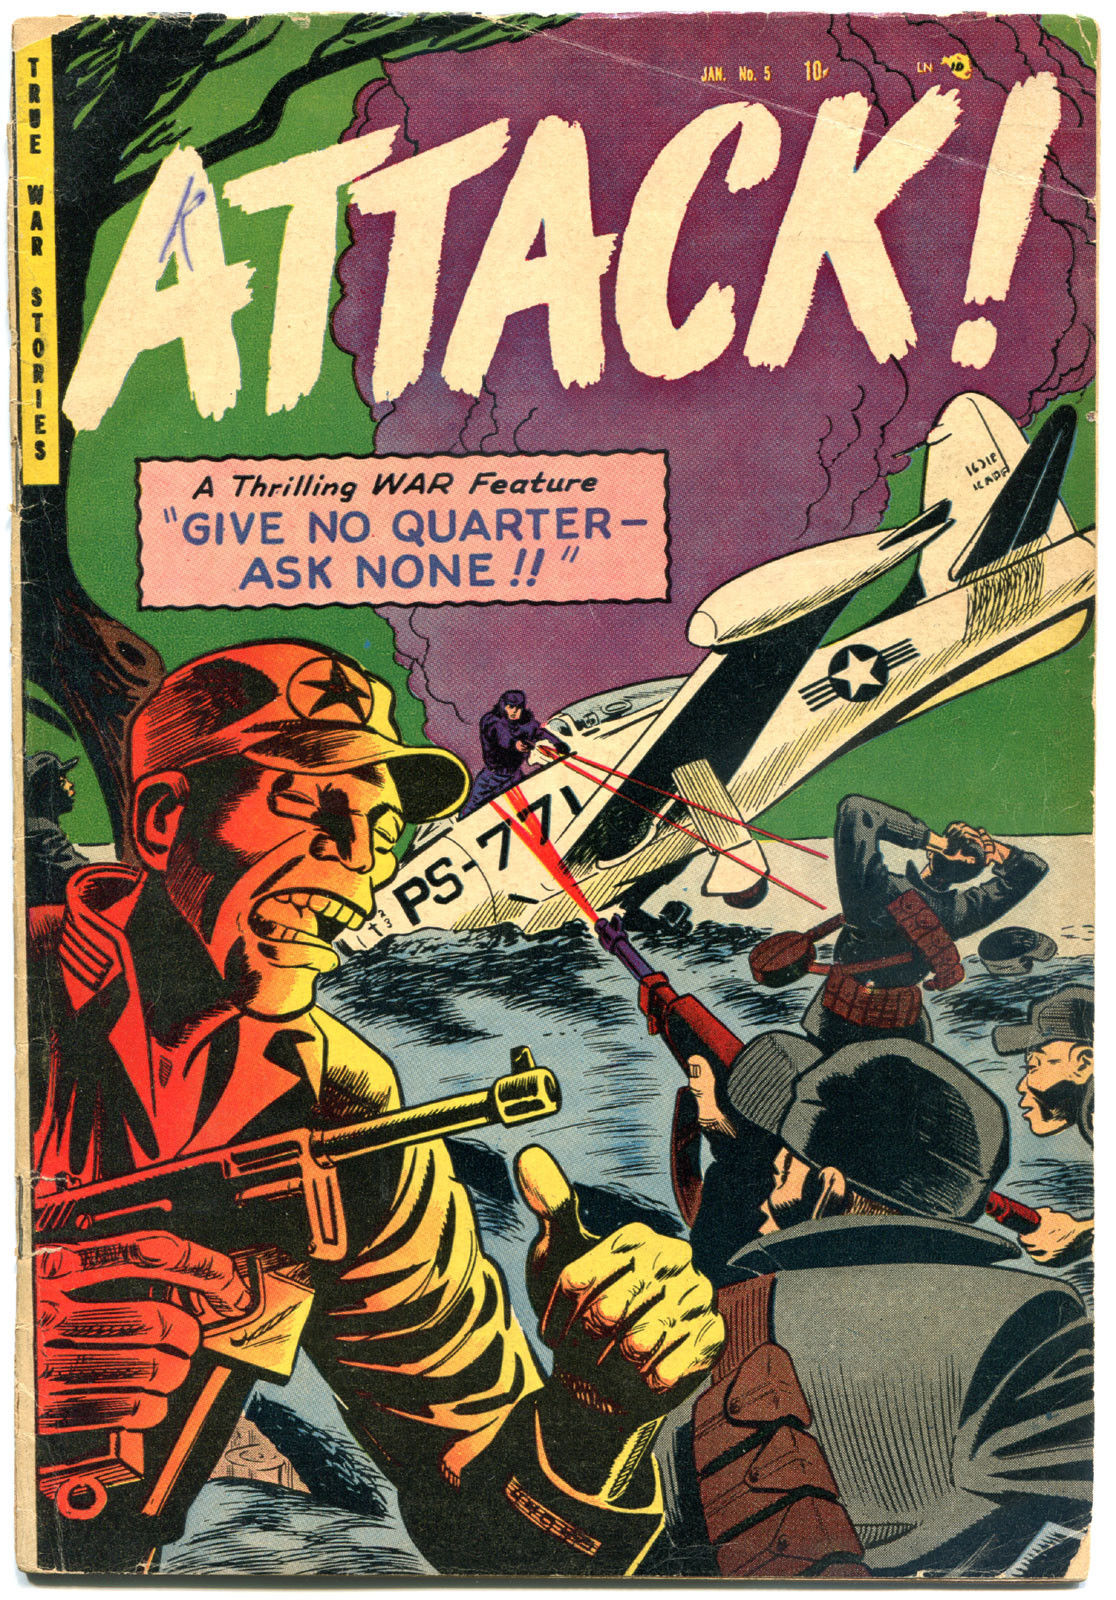 ATTACK #5, VG, 1952, Golden Age, Trojan, Give no Quarter, more in store